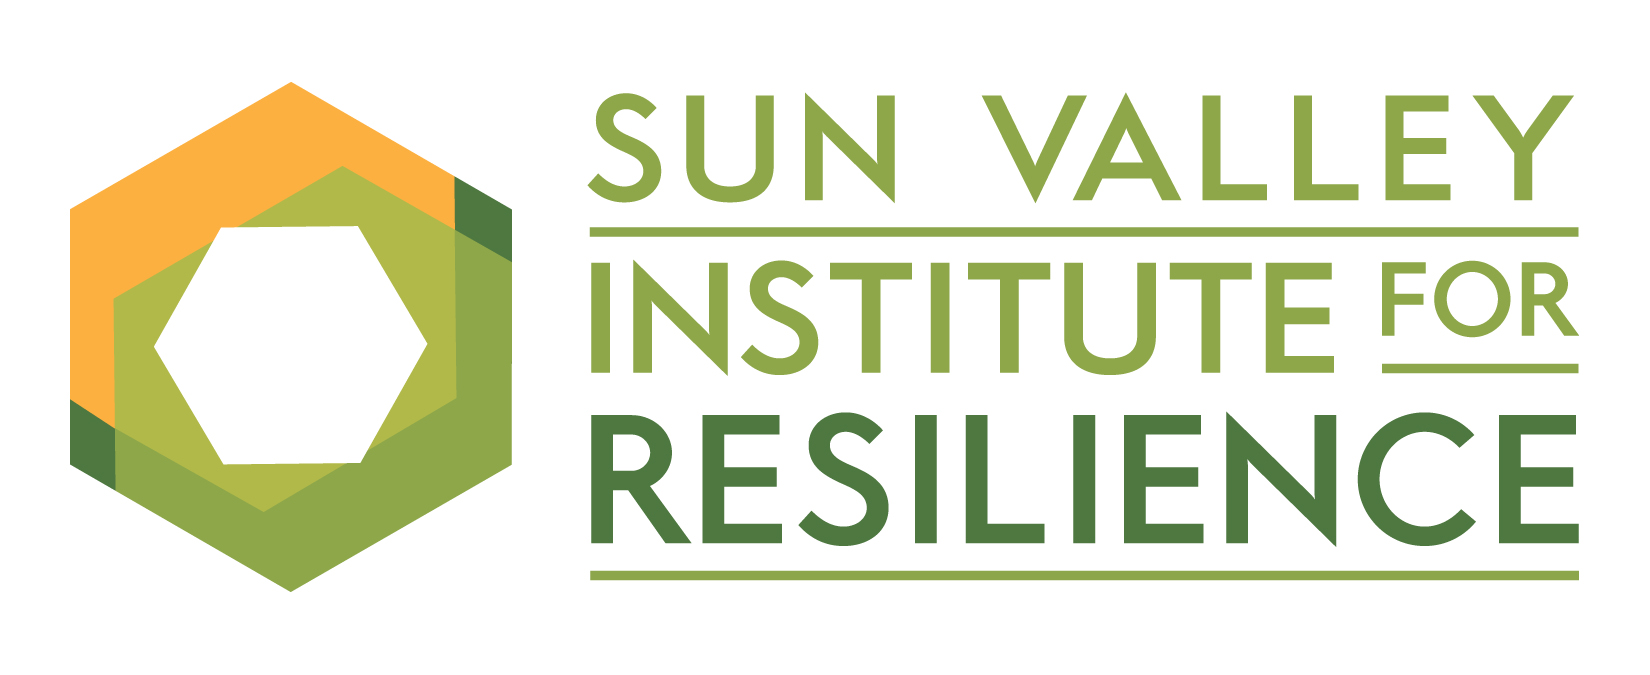 Sun Valley Institute for Resilience Logo